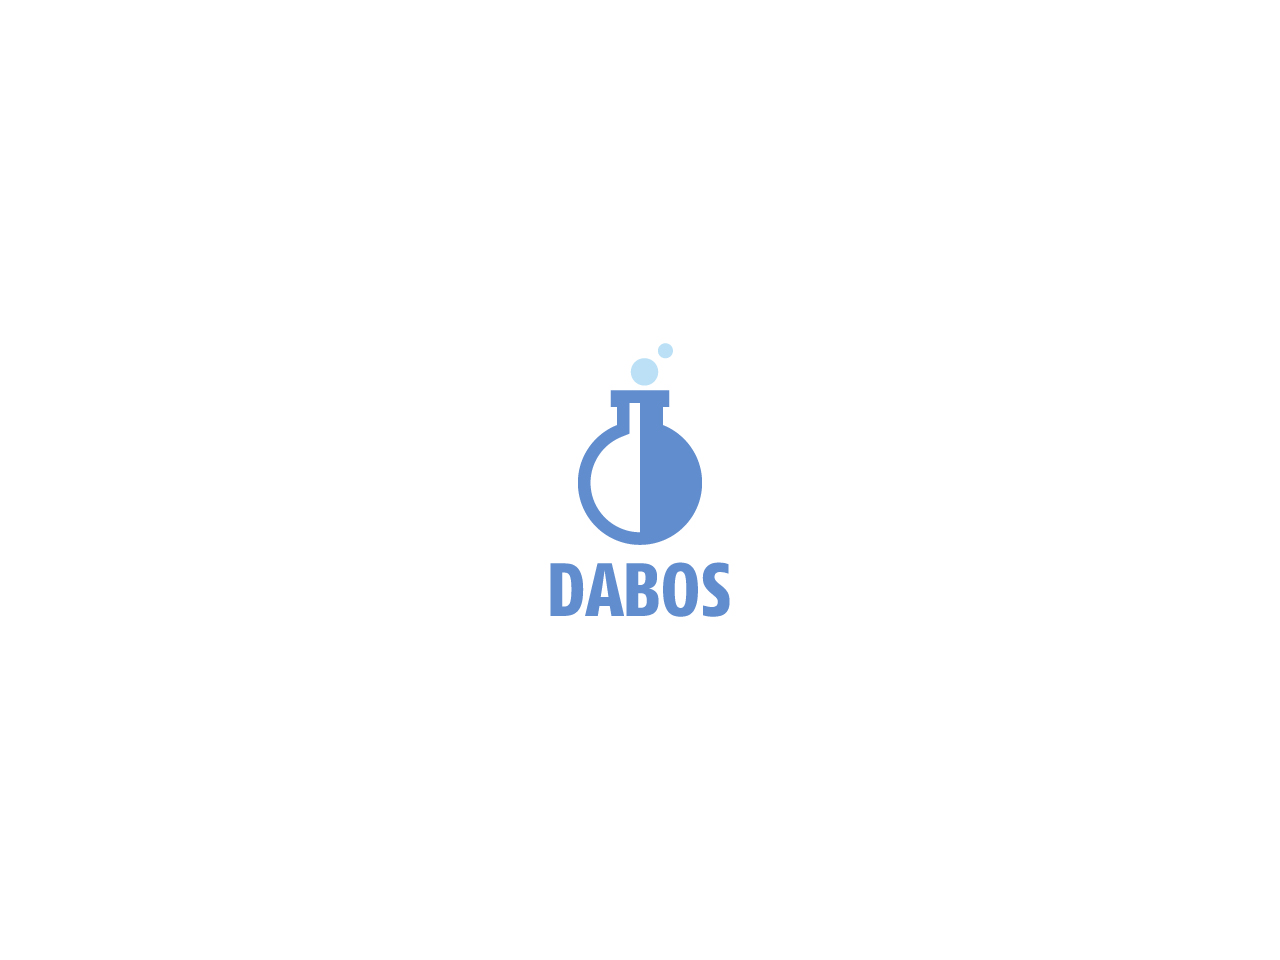 Logo Design by Kenneth Luna - Entry No. 35 in the Logo Design Contest Imaginative Logo Design for DABOS, Limited Liability Company.